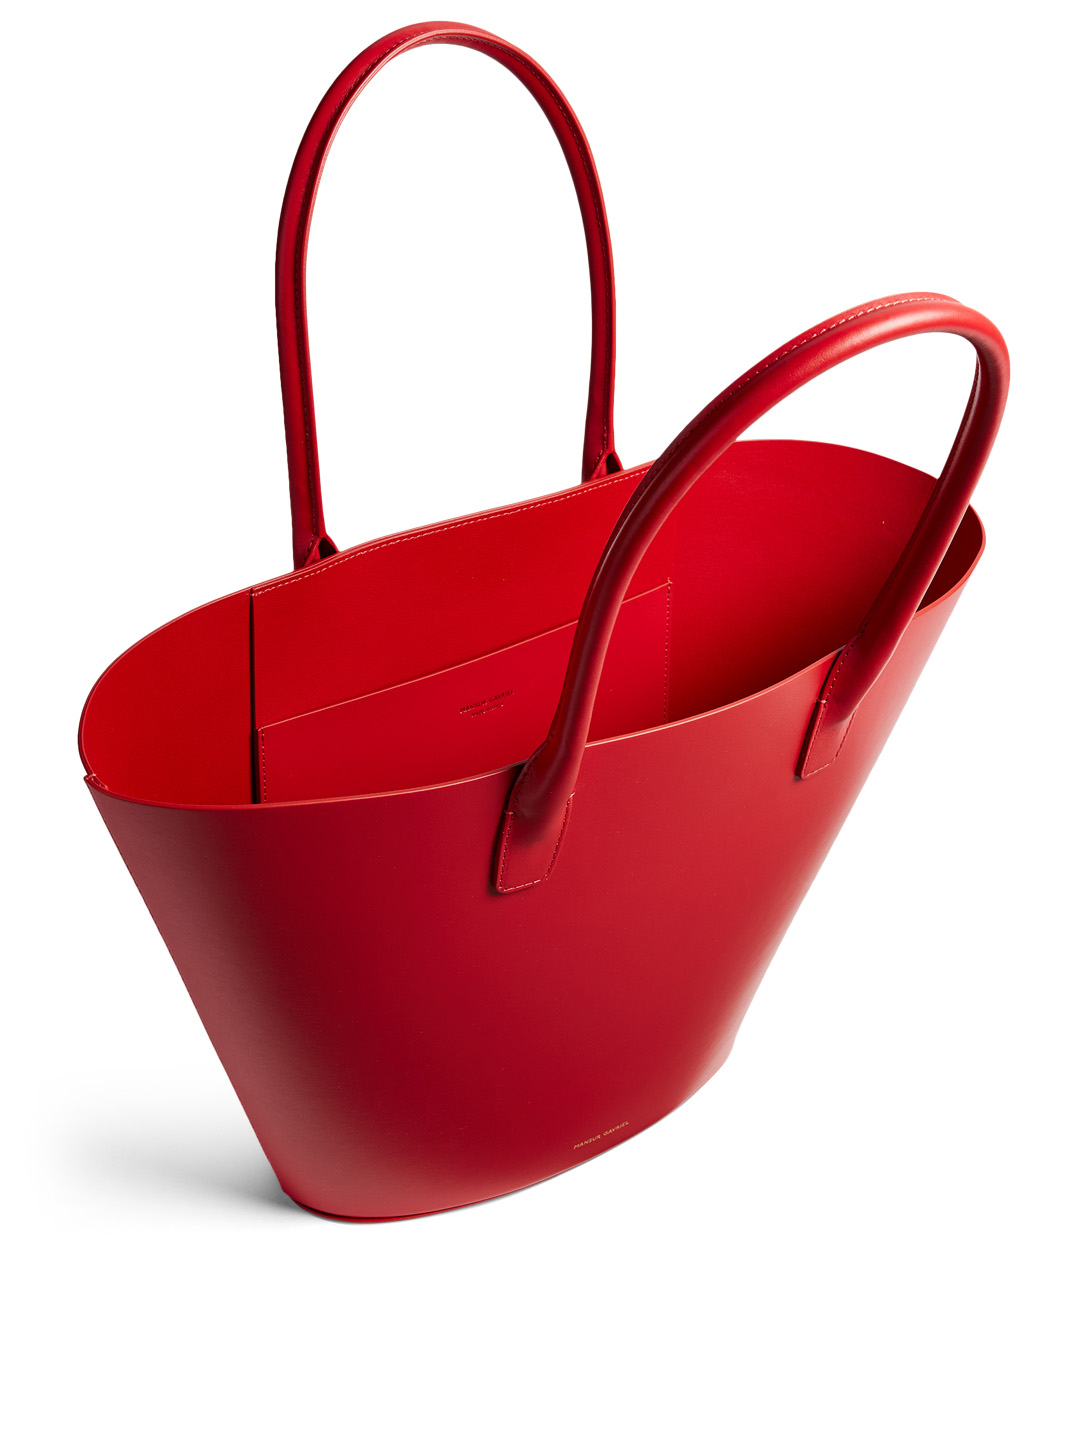 MANSUR GAVRIEL Leather Triangle Tote Bag Women's Red